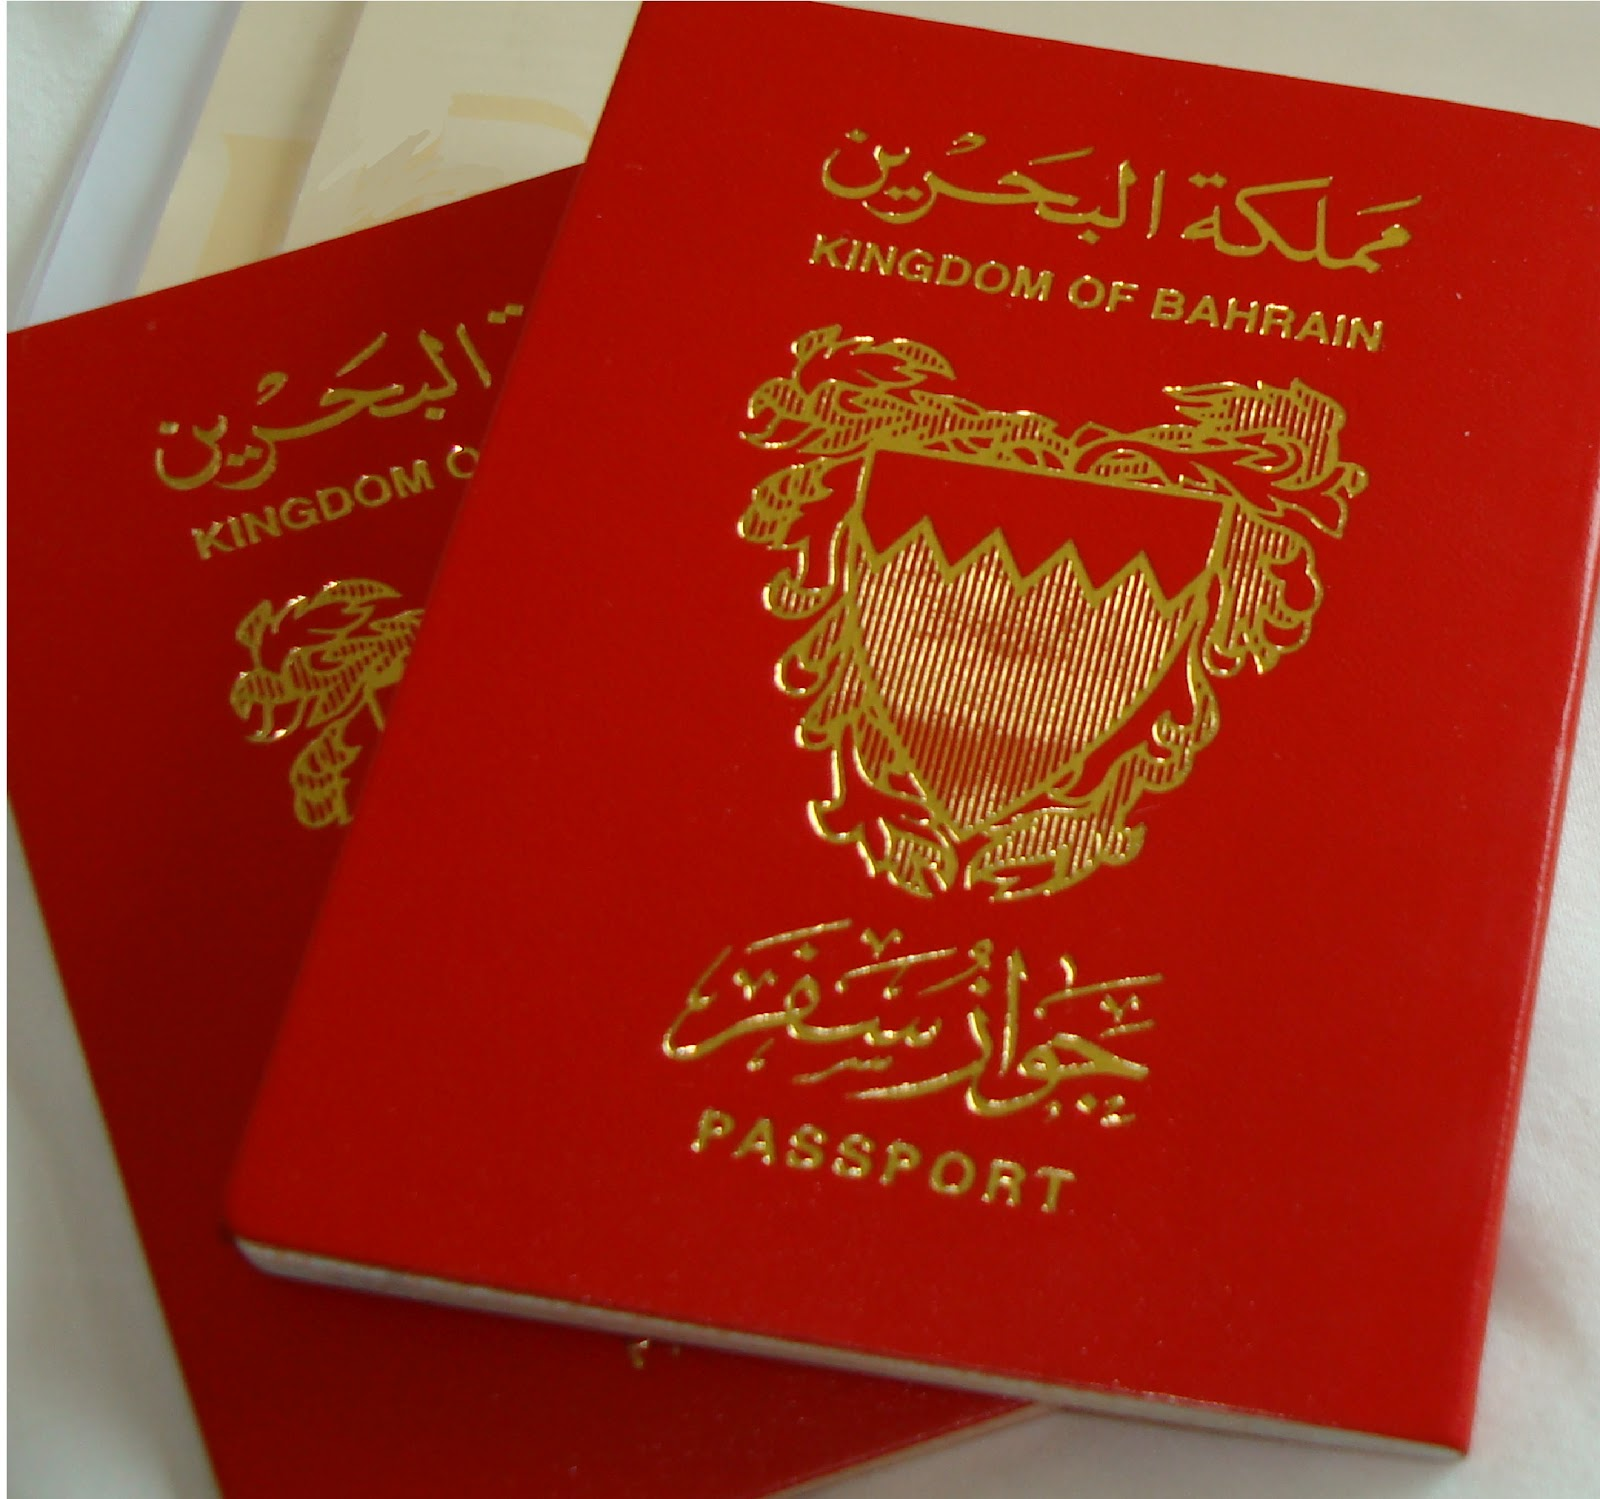 Bahrain: Authorities should stop policy of withdrawing nationalities and deporting dissidents